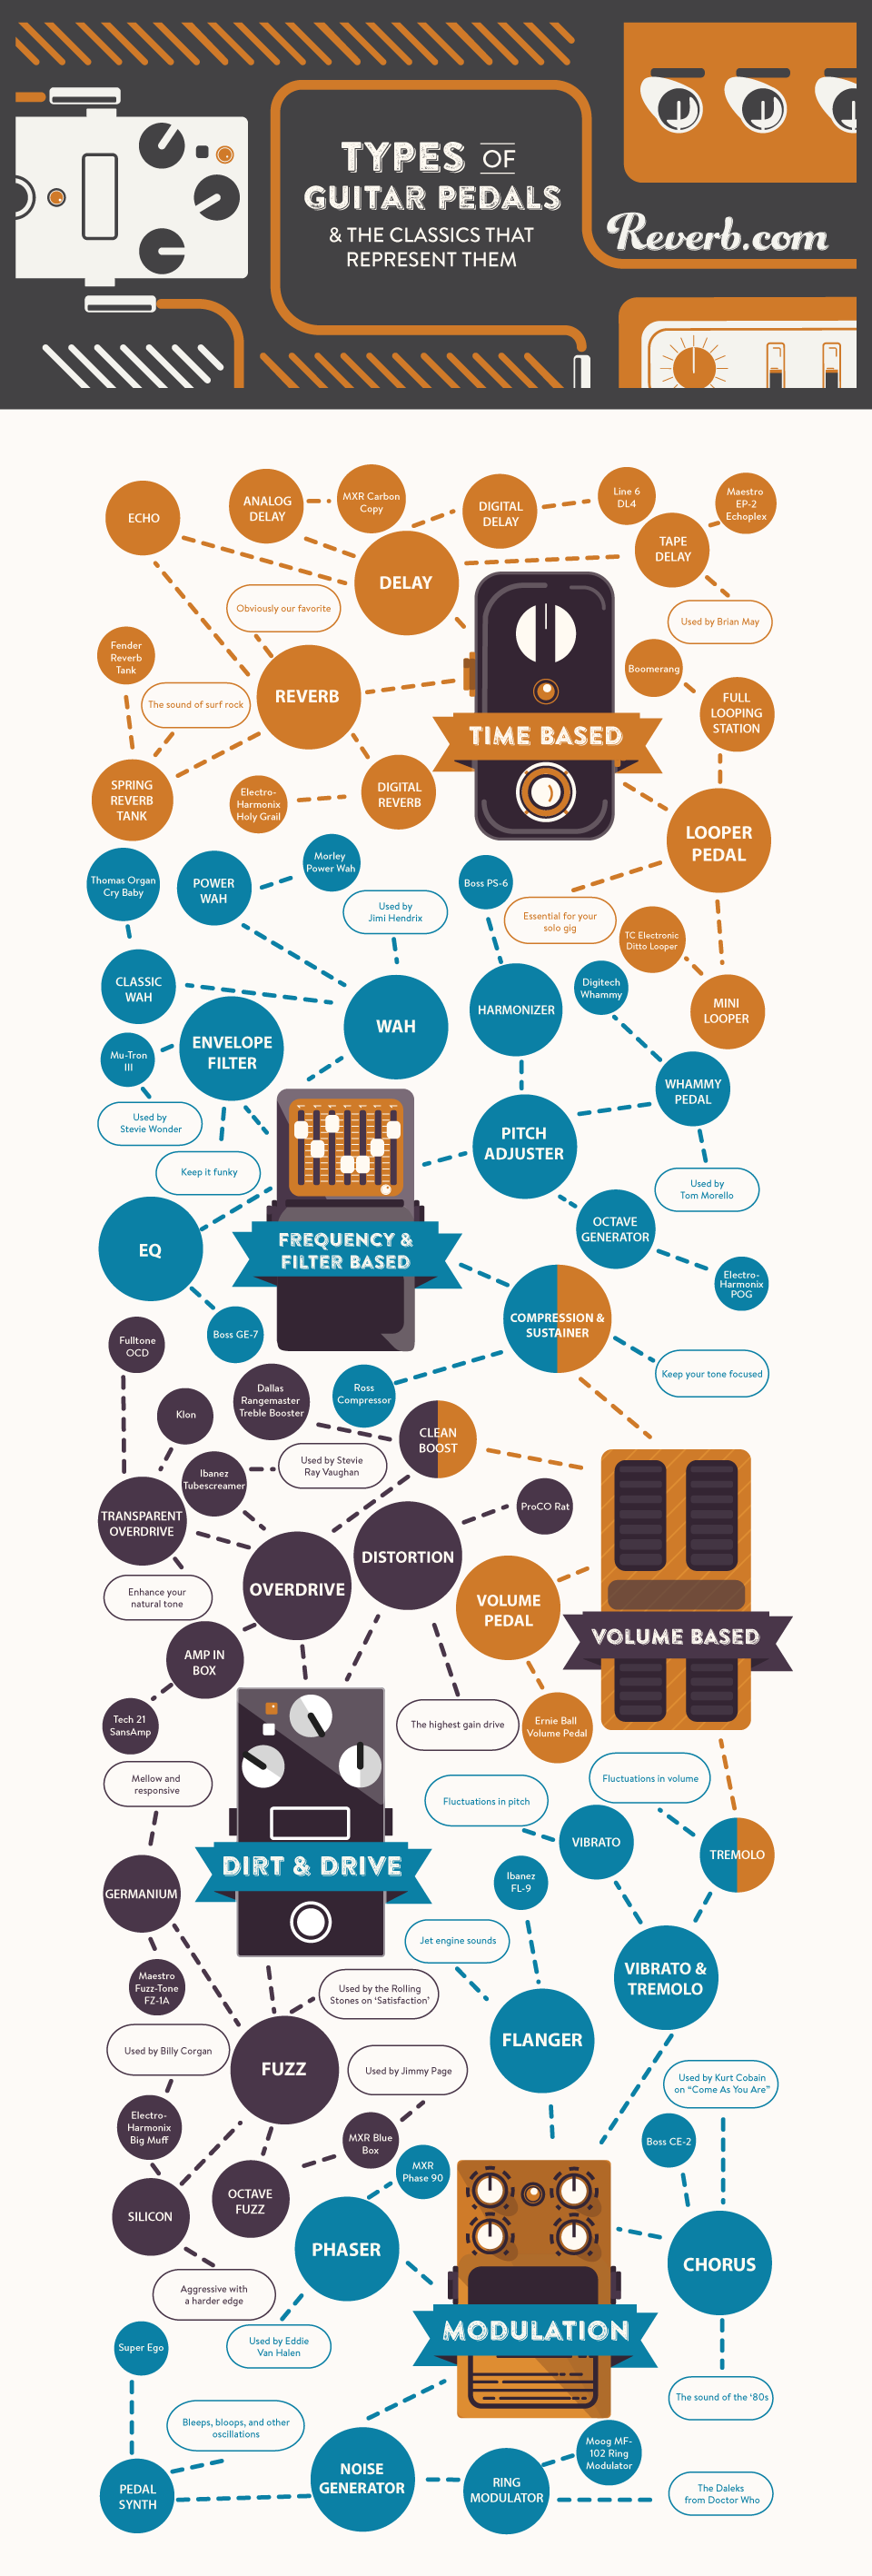 Infographic: Types of Guitar Pedals and the Classics That Represent Them